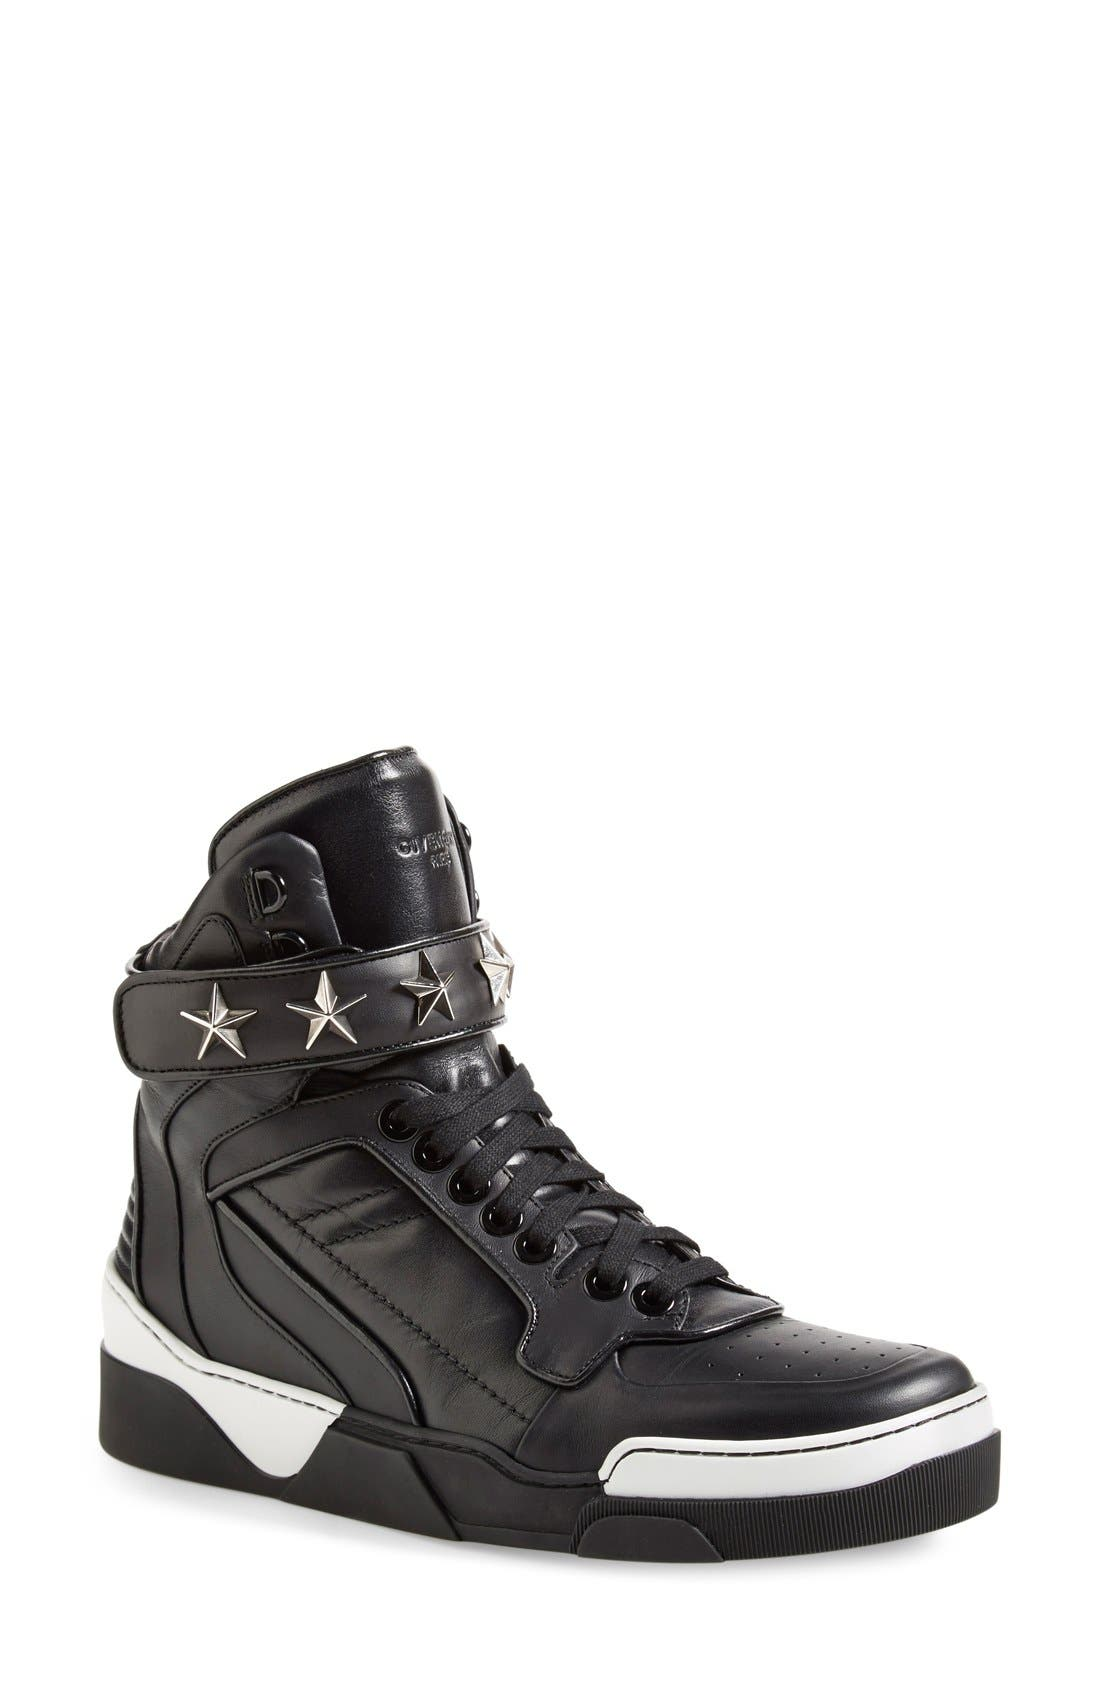 'Tyson' High Top Sneaker,                             Main thumbnail 1, color,